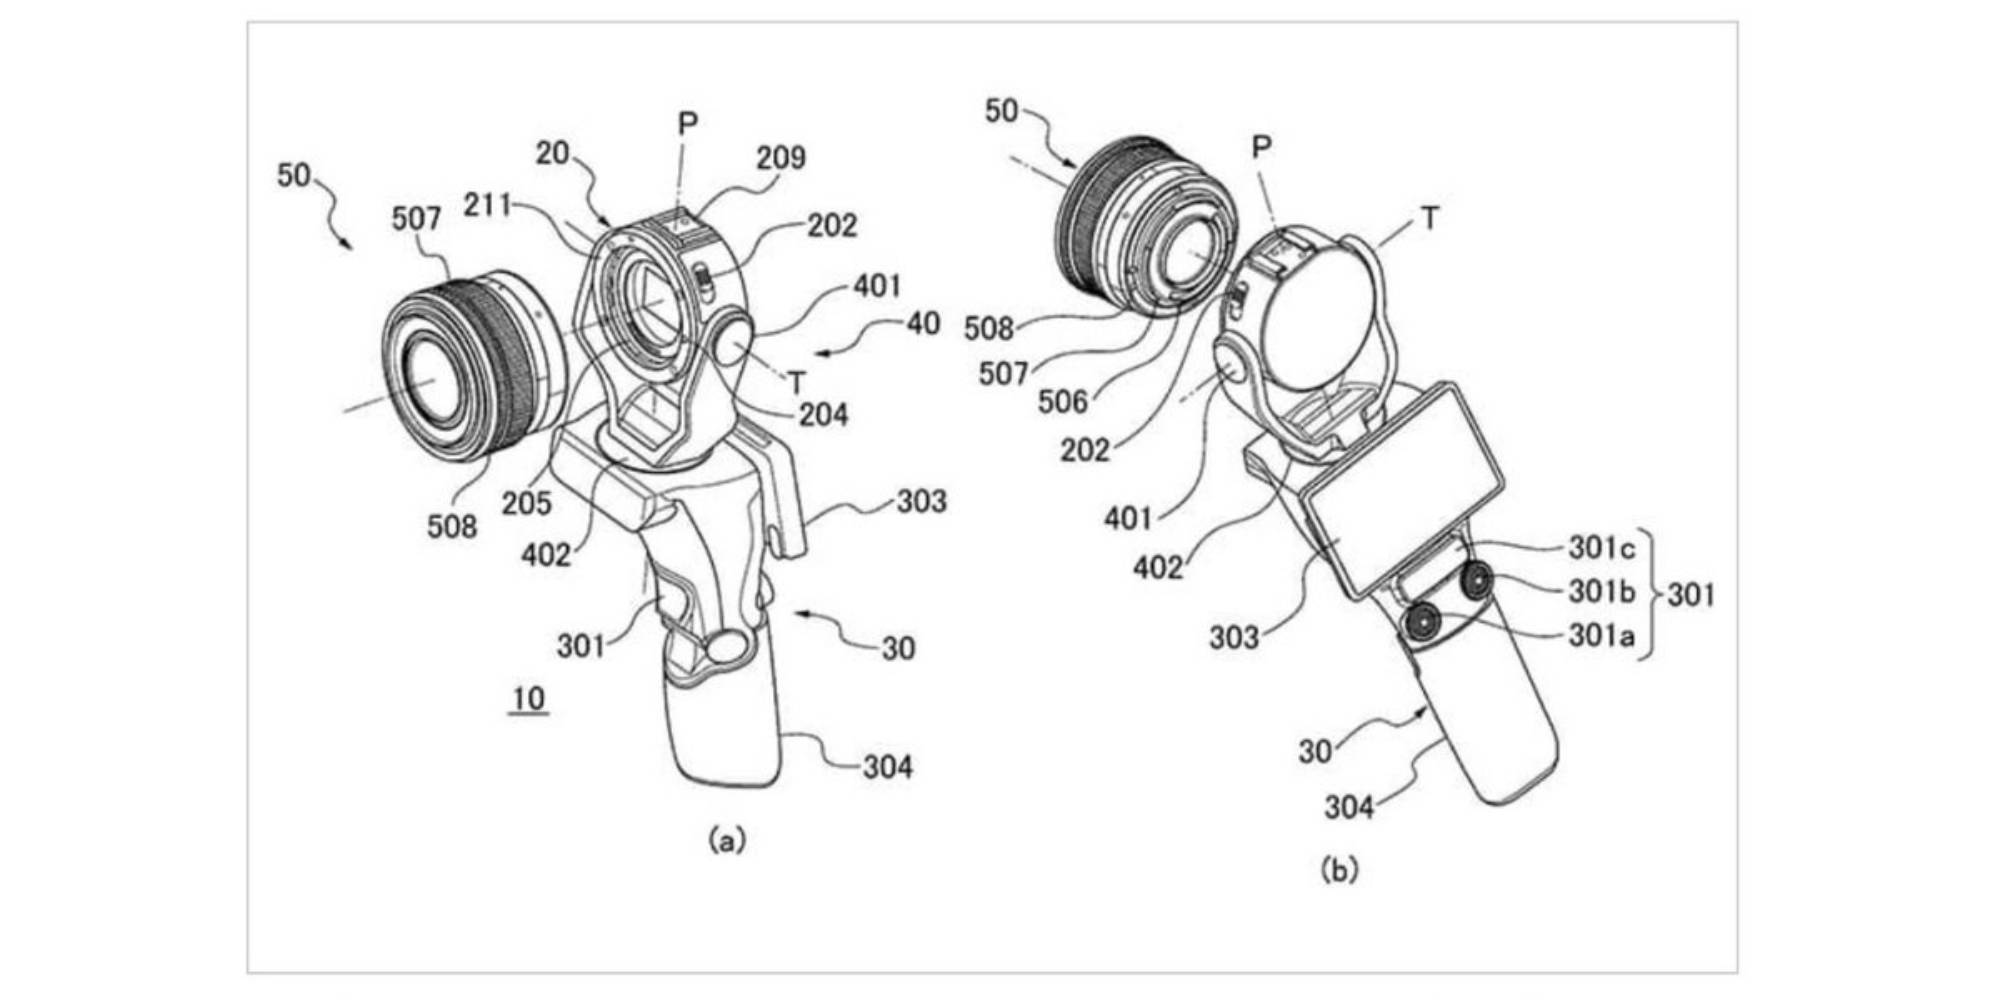 Canon DJI Osmo alternative patent